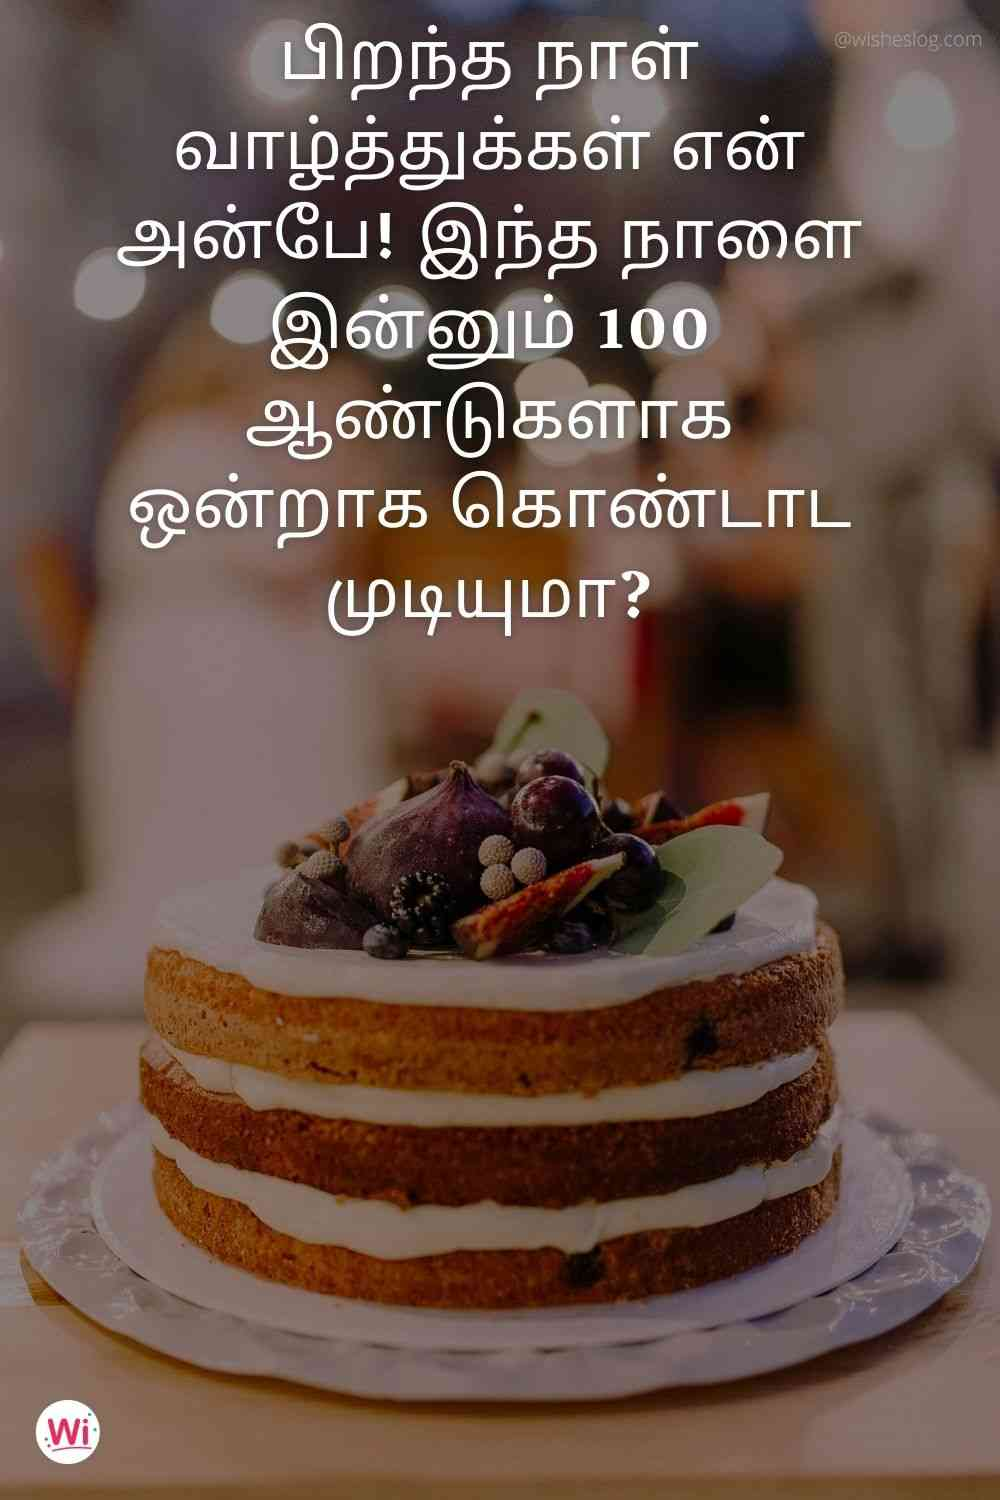 birthday greetings in tamil for girlfriend